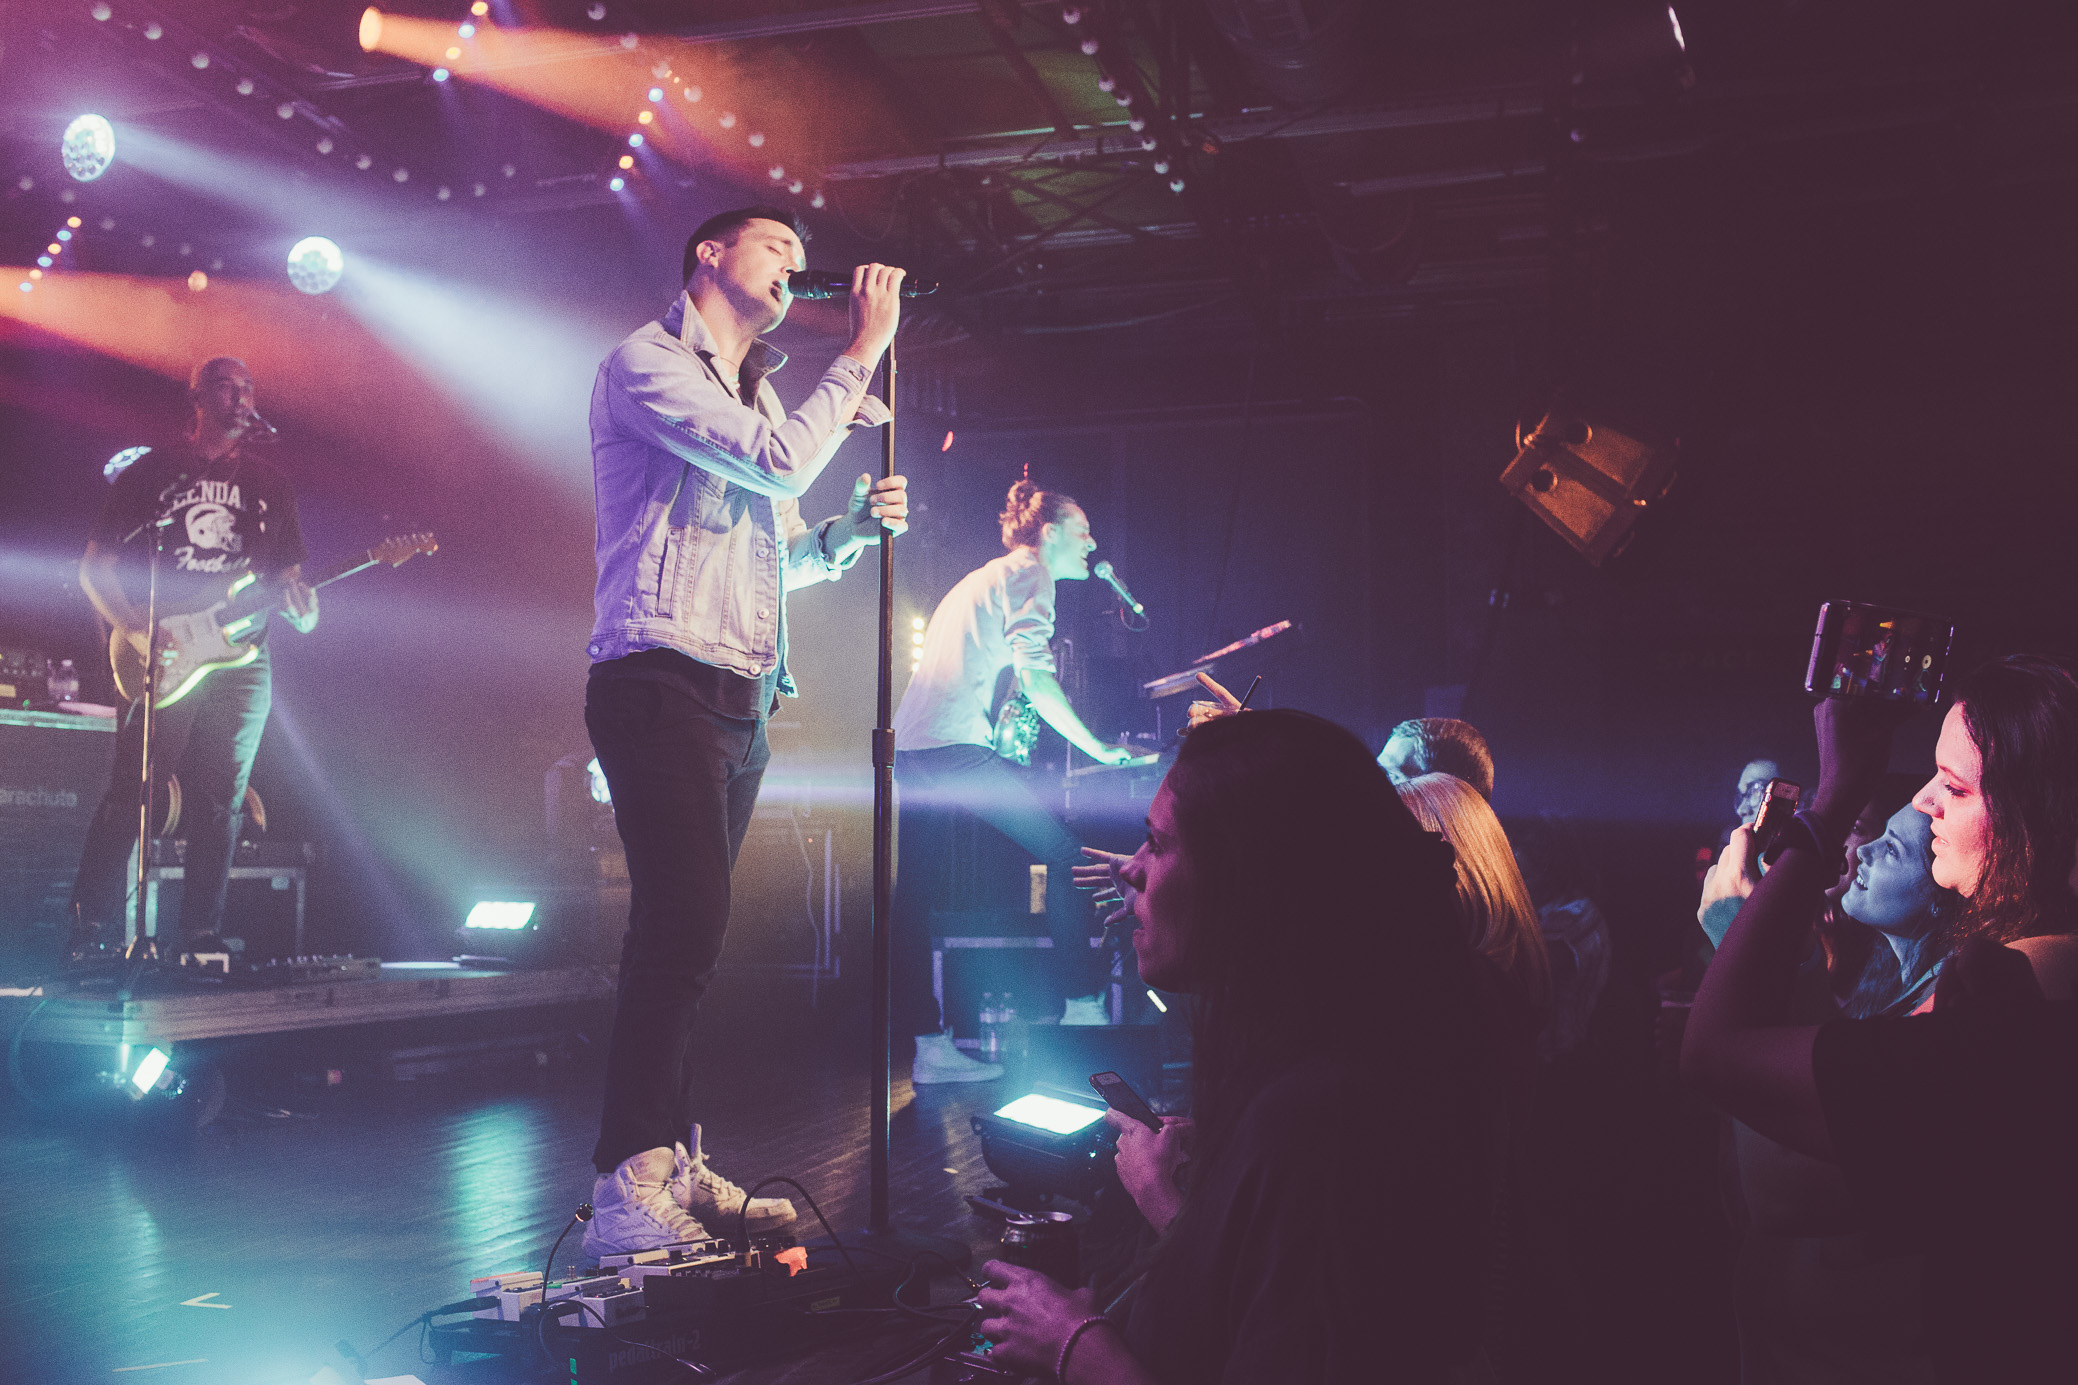 Parachute performs in concert at Saturn Birmingham in Birmingham, Alabama on June 24th, 2019. (Photo by David A. Smith / DSmithScenes)